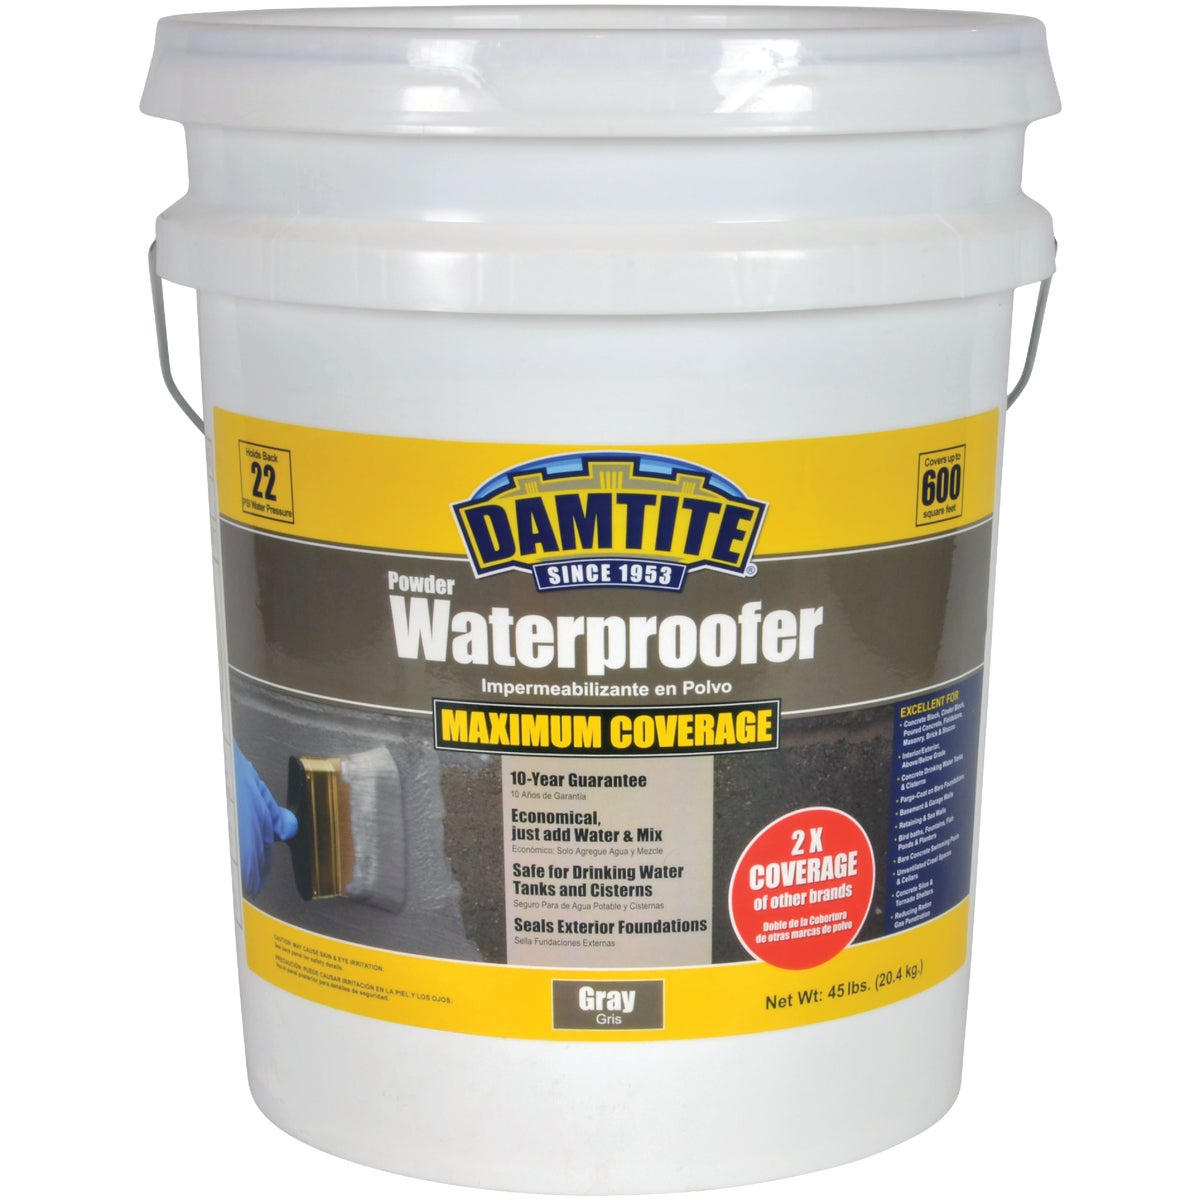 45LB G WTRPF FOUNDATION - 02451 by Damtite Waterproofng